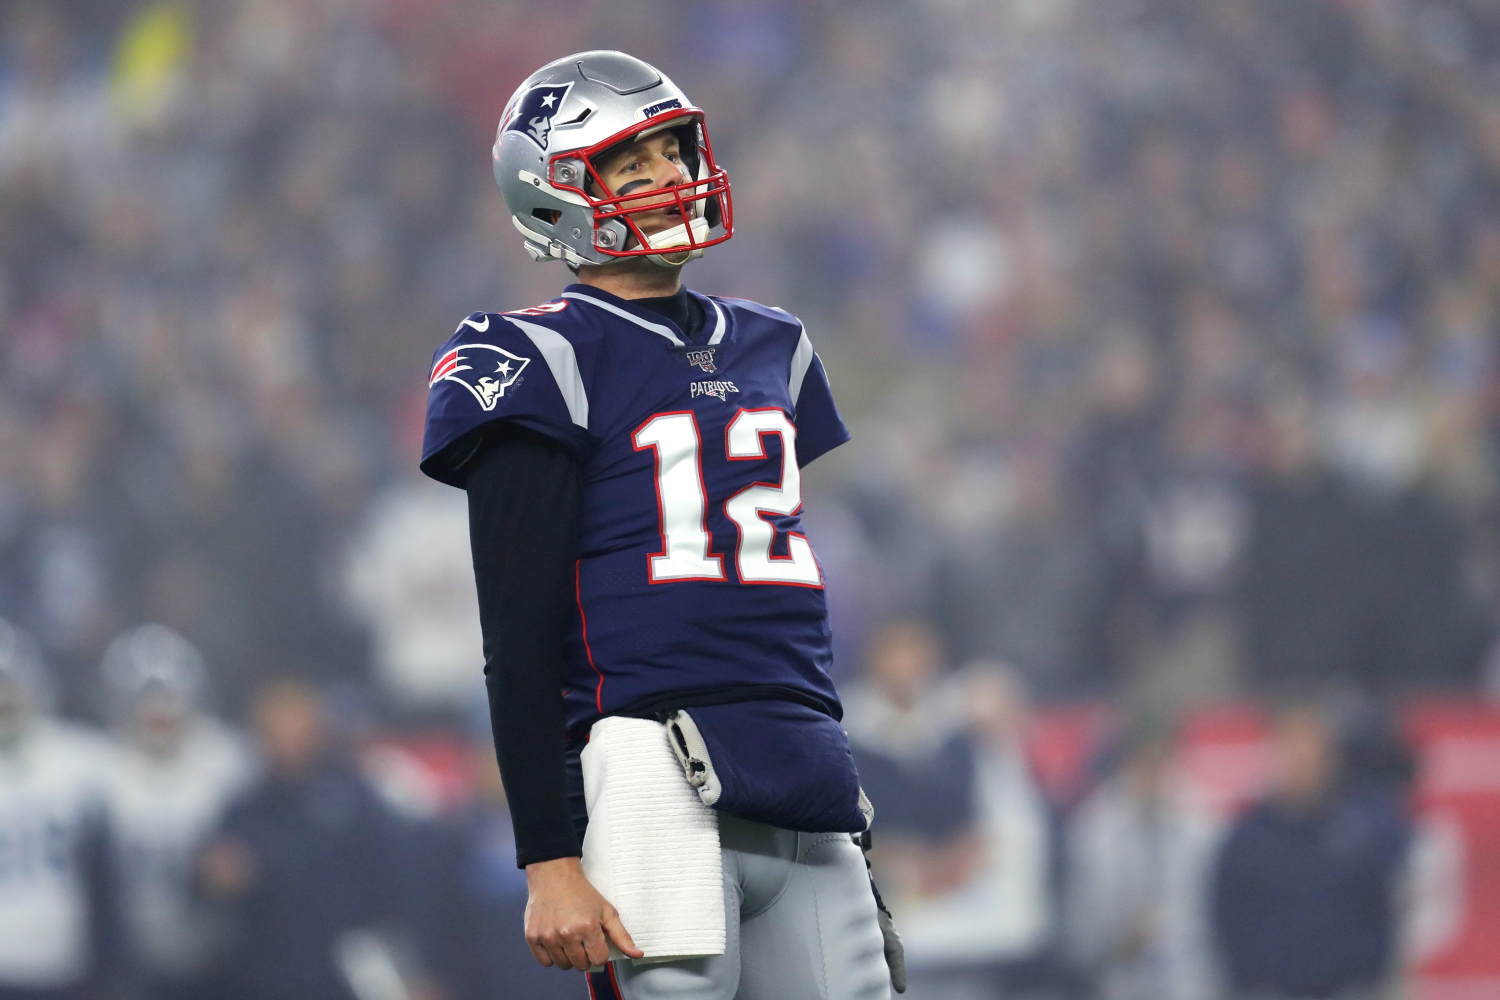 Some former New England Patriots coaches are hinting that Tom Brady may not be the GOAT.